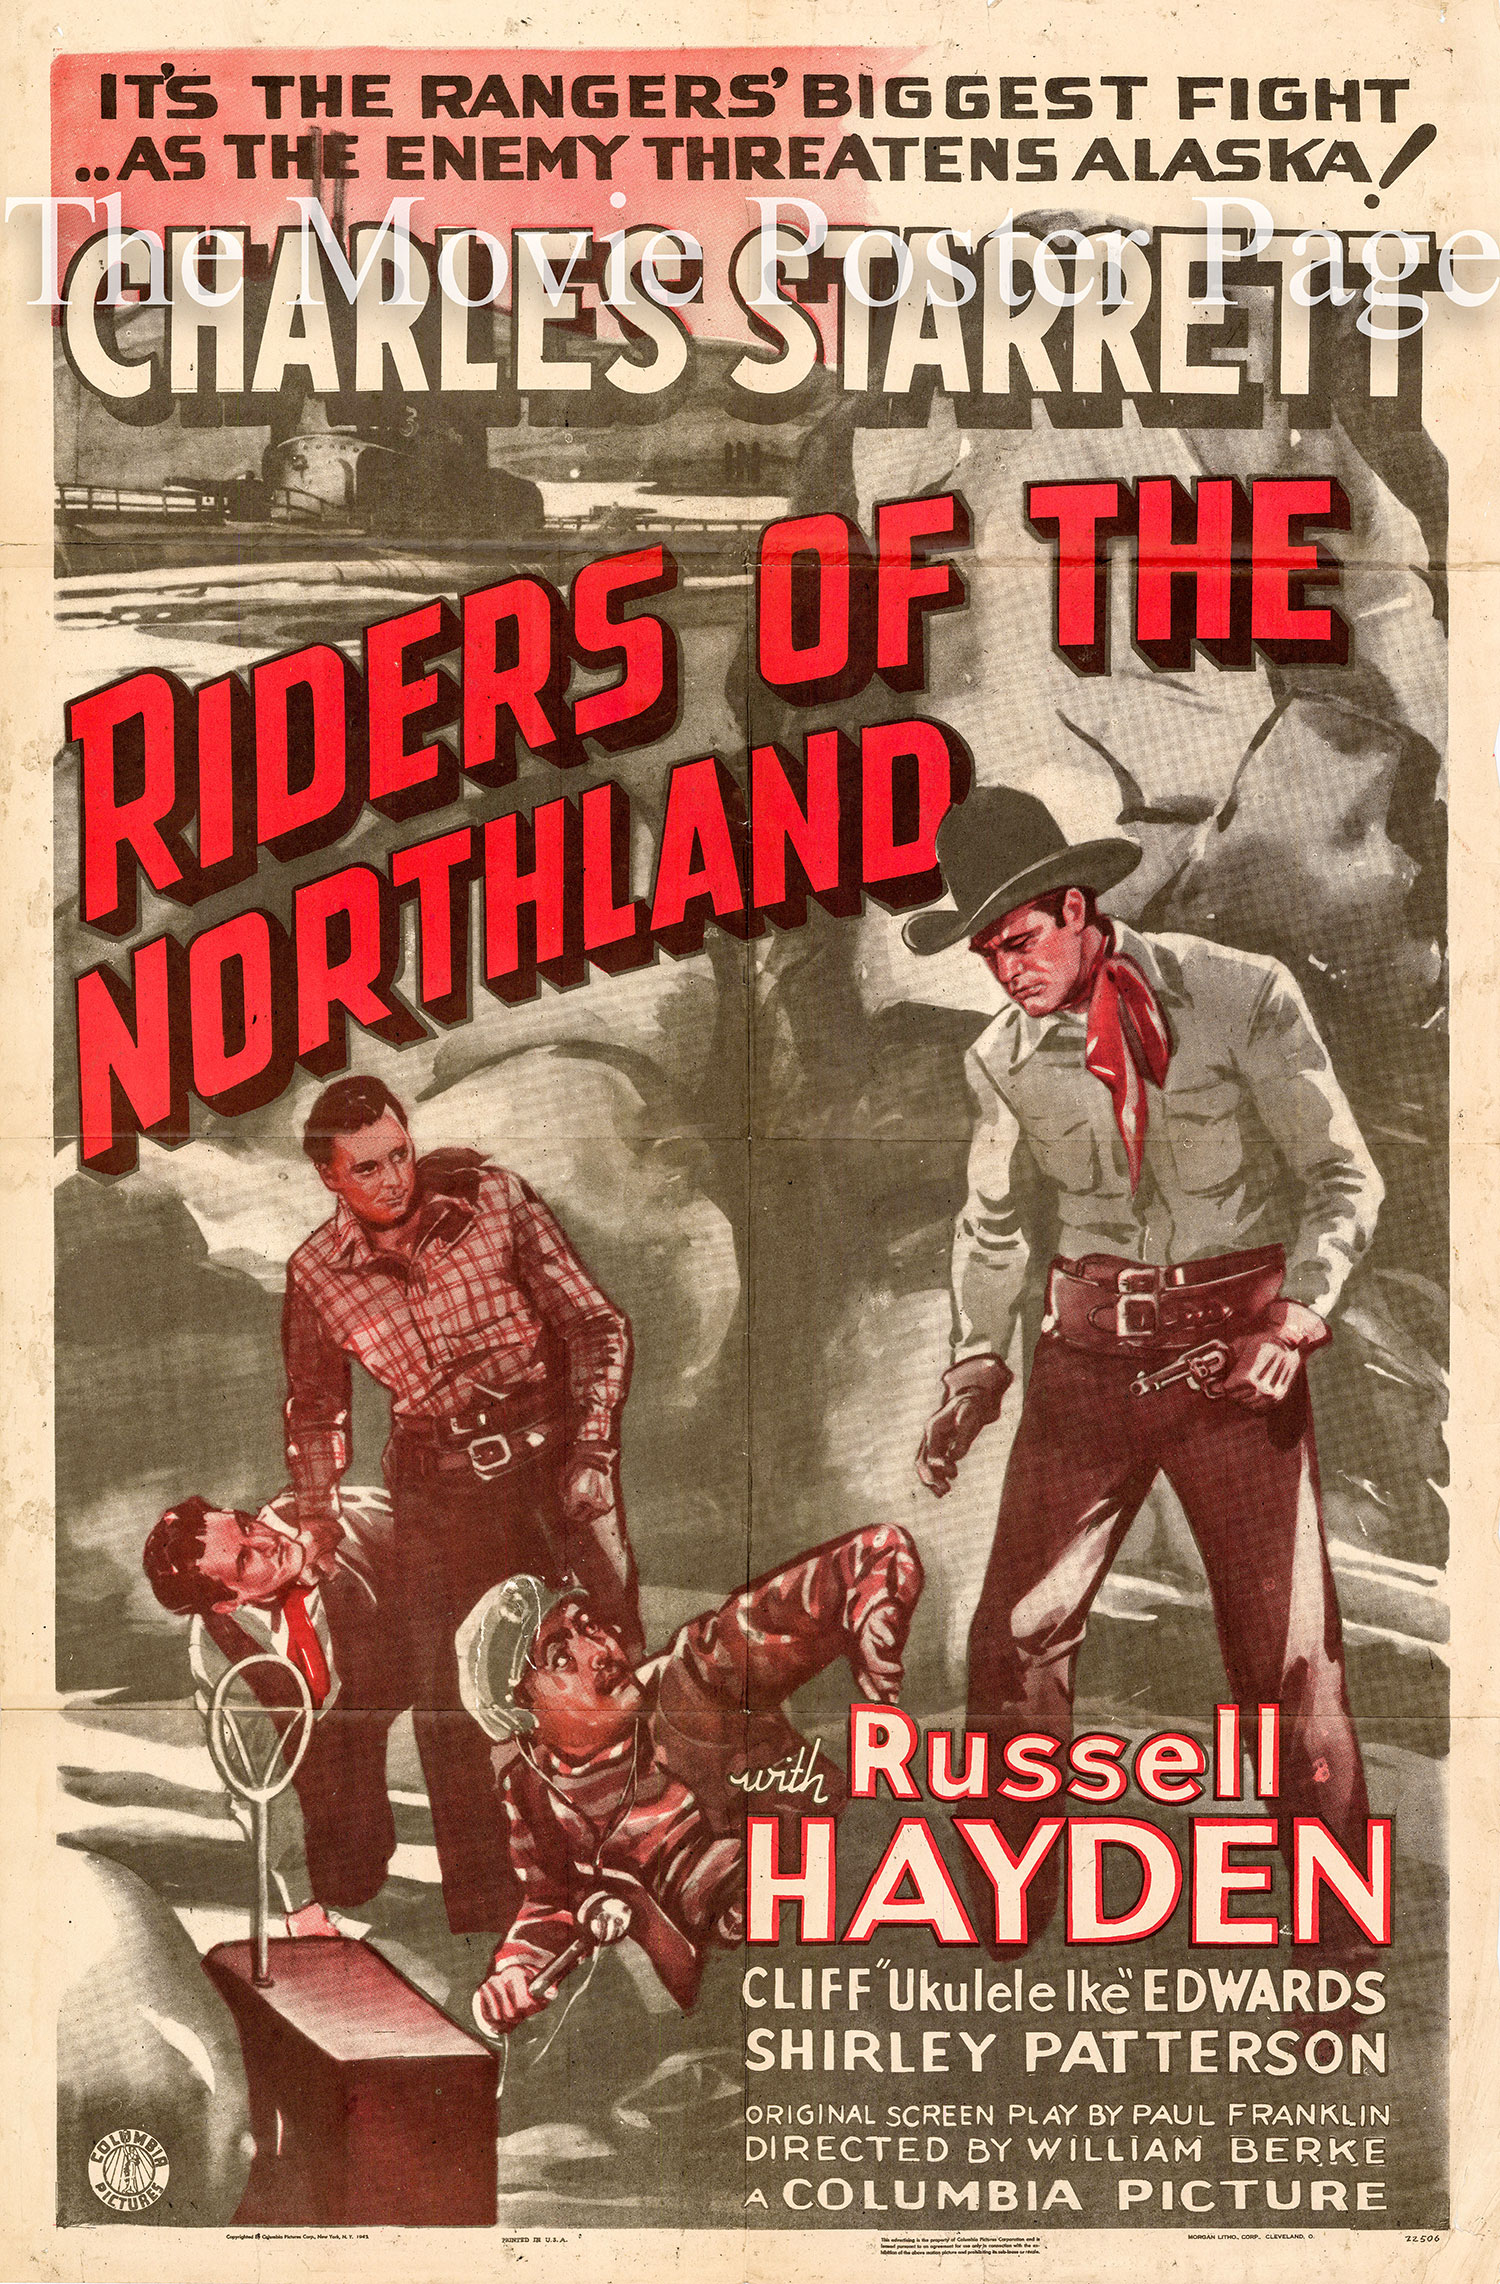 Pictured is a US one-sheet promotional poster for the 1942 William Berke film Riders of the Northland starring Charles Starrett.